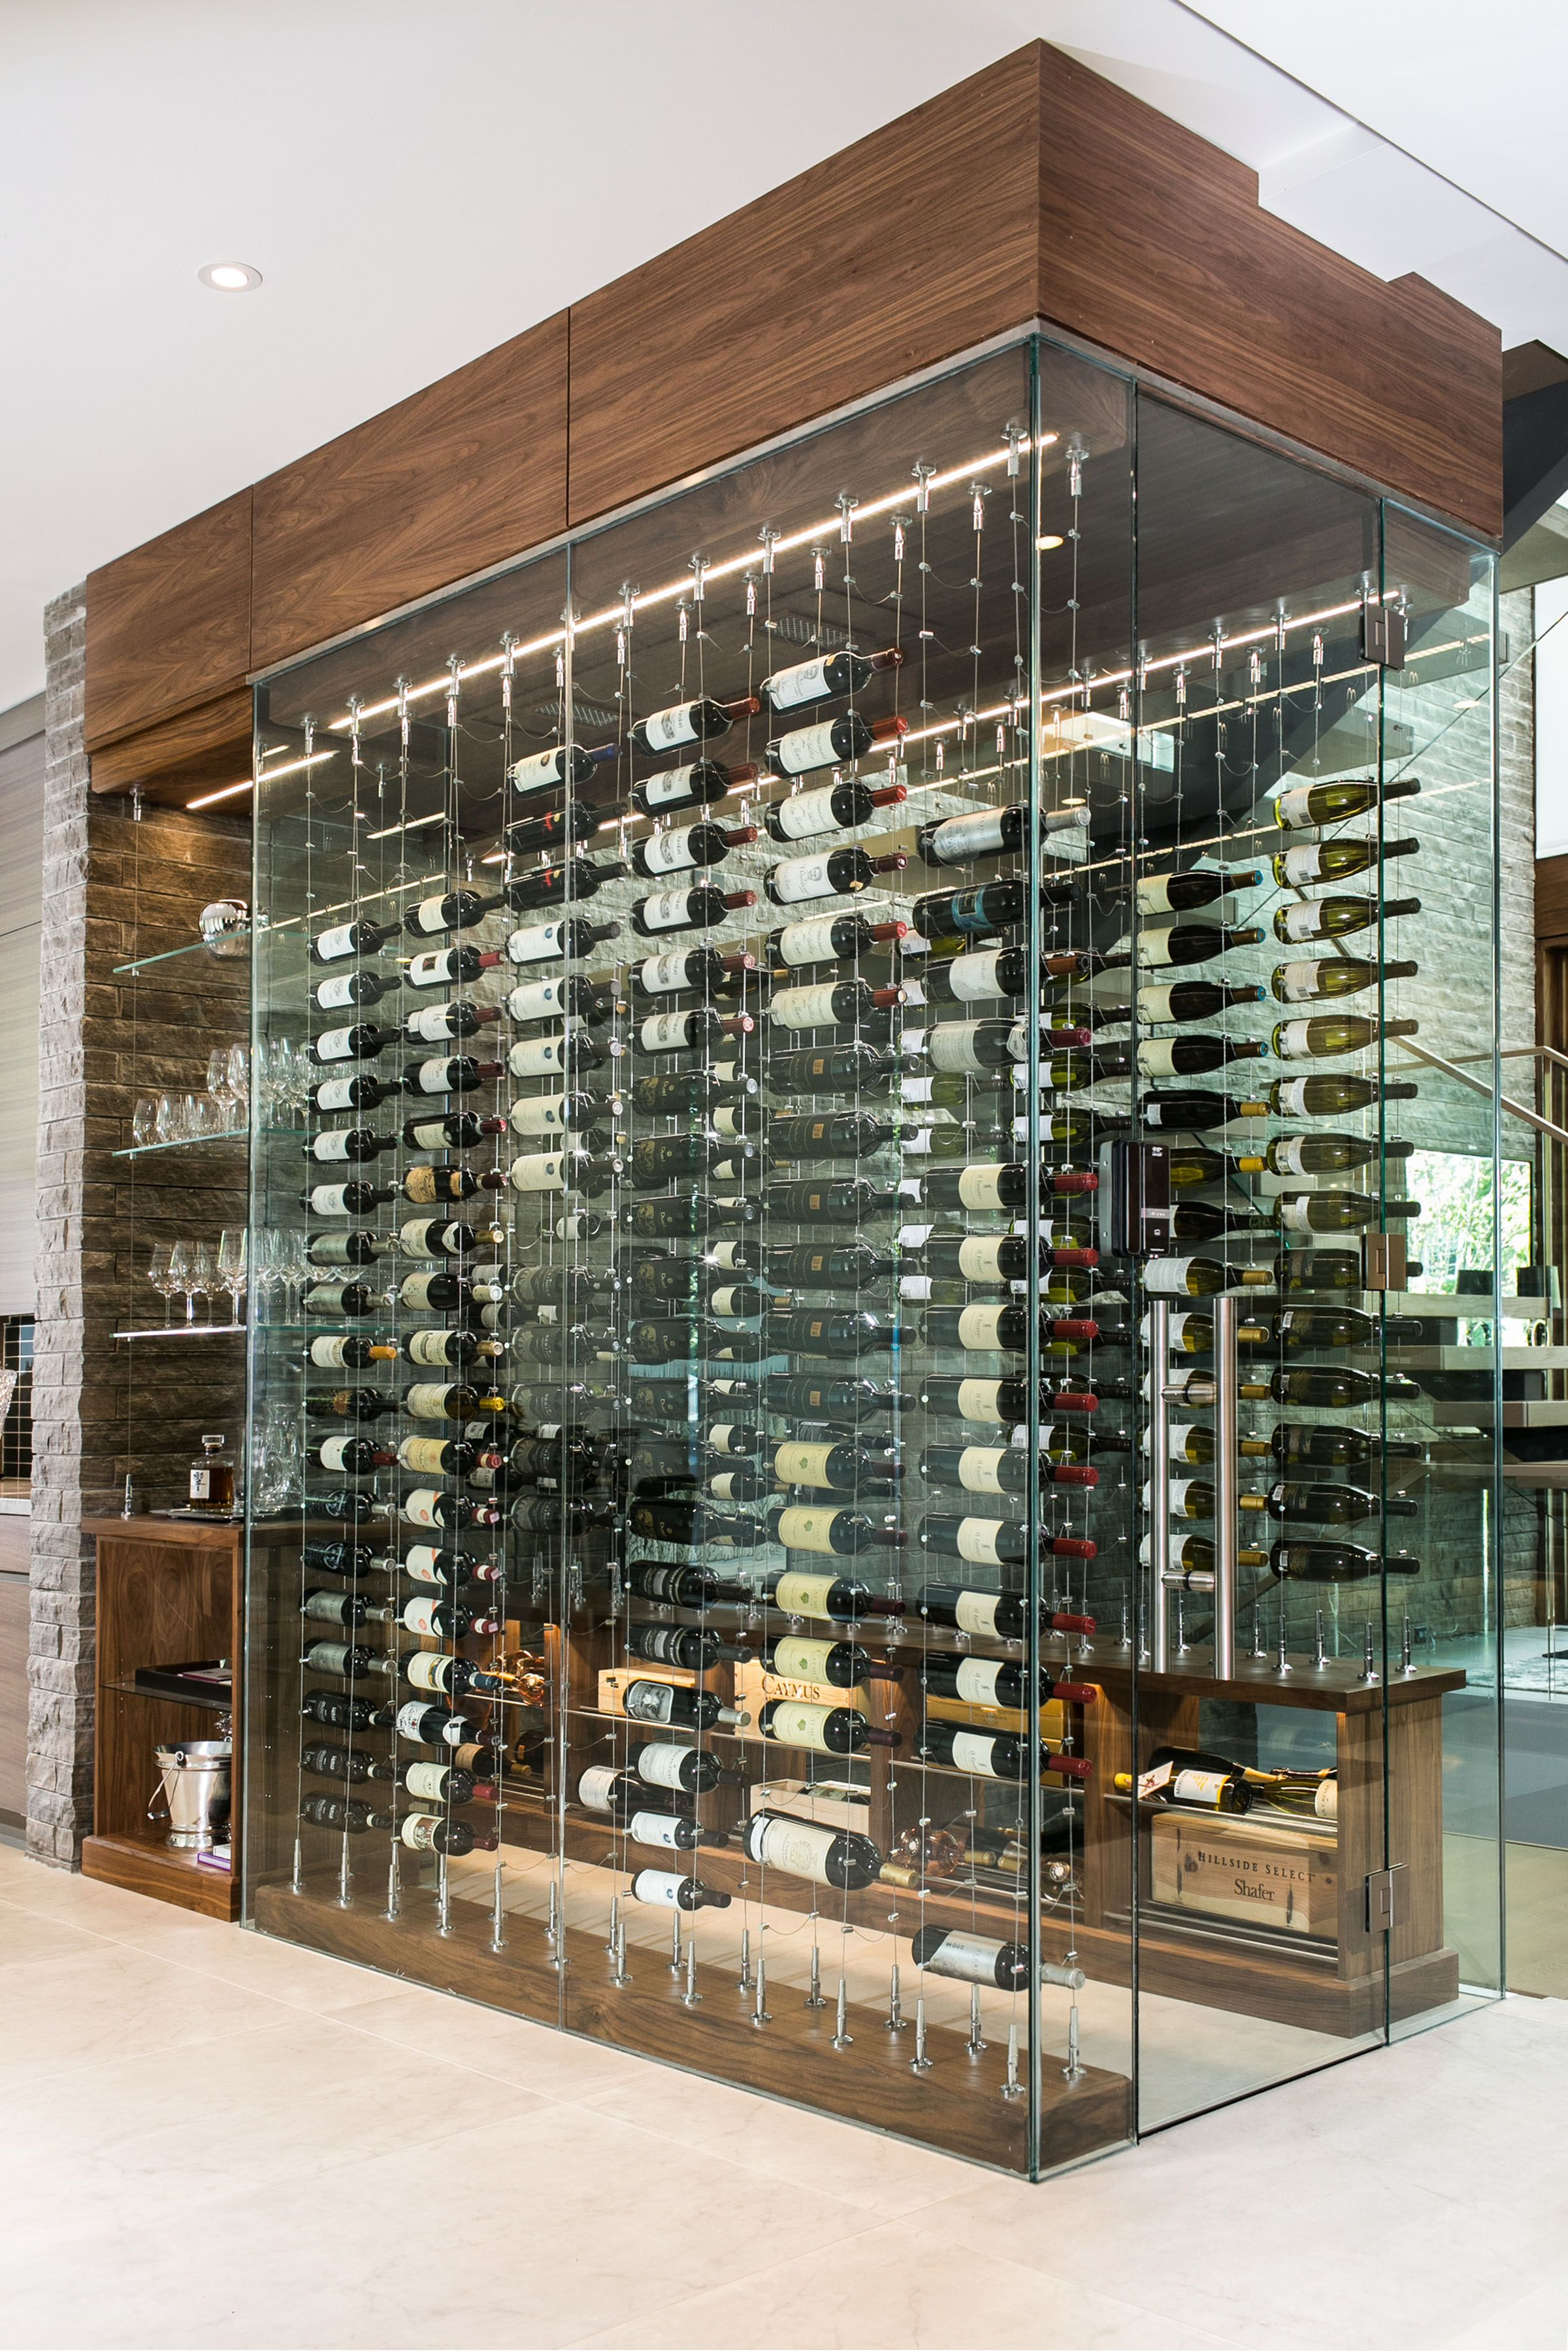 Under The Stairs Glass Enclosed Cable Wine System Mancave Winelounge Wineideas Wine Modern Inter With Images Wine Cellar Design Glass Wine Cellar Home Wine Cellars